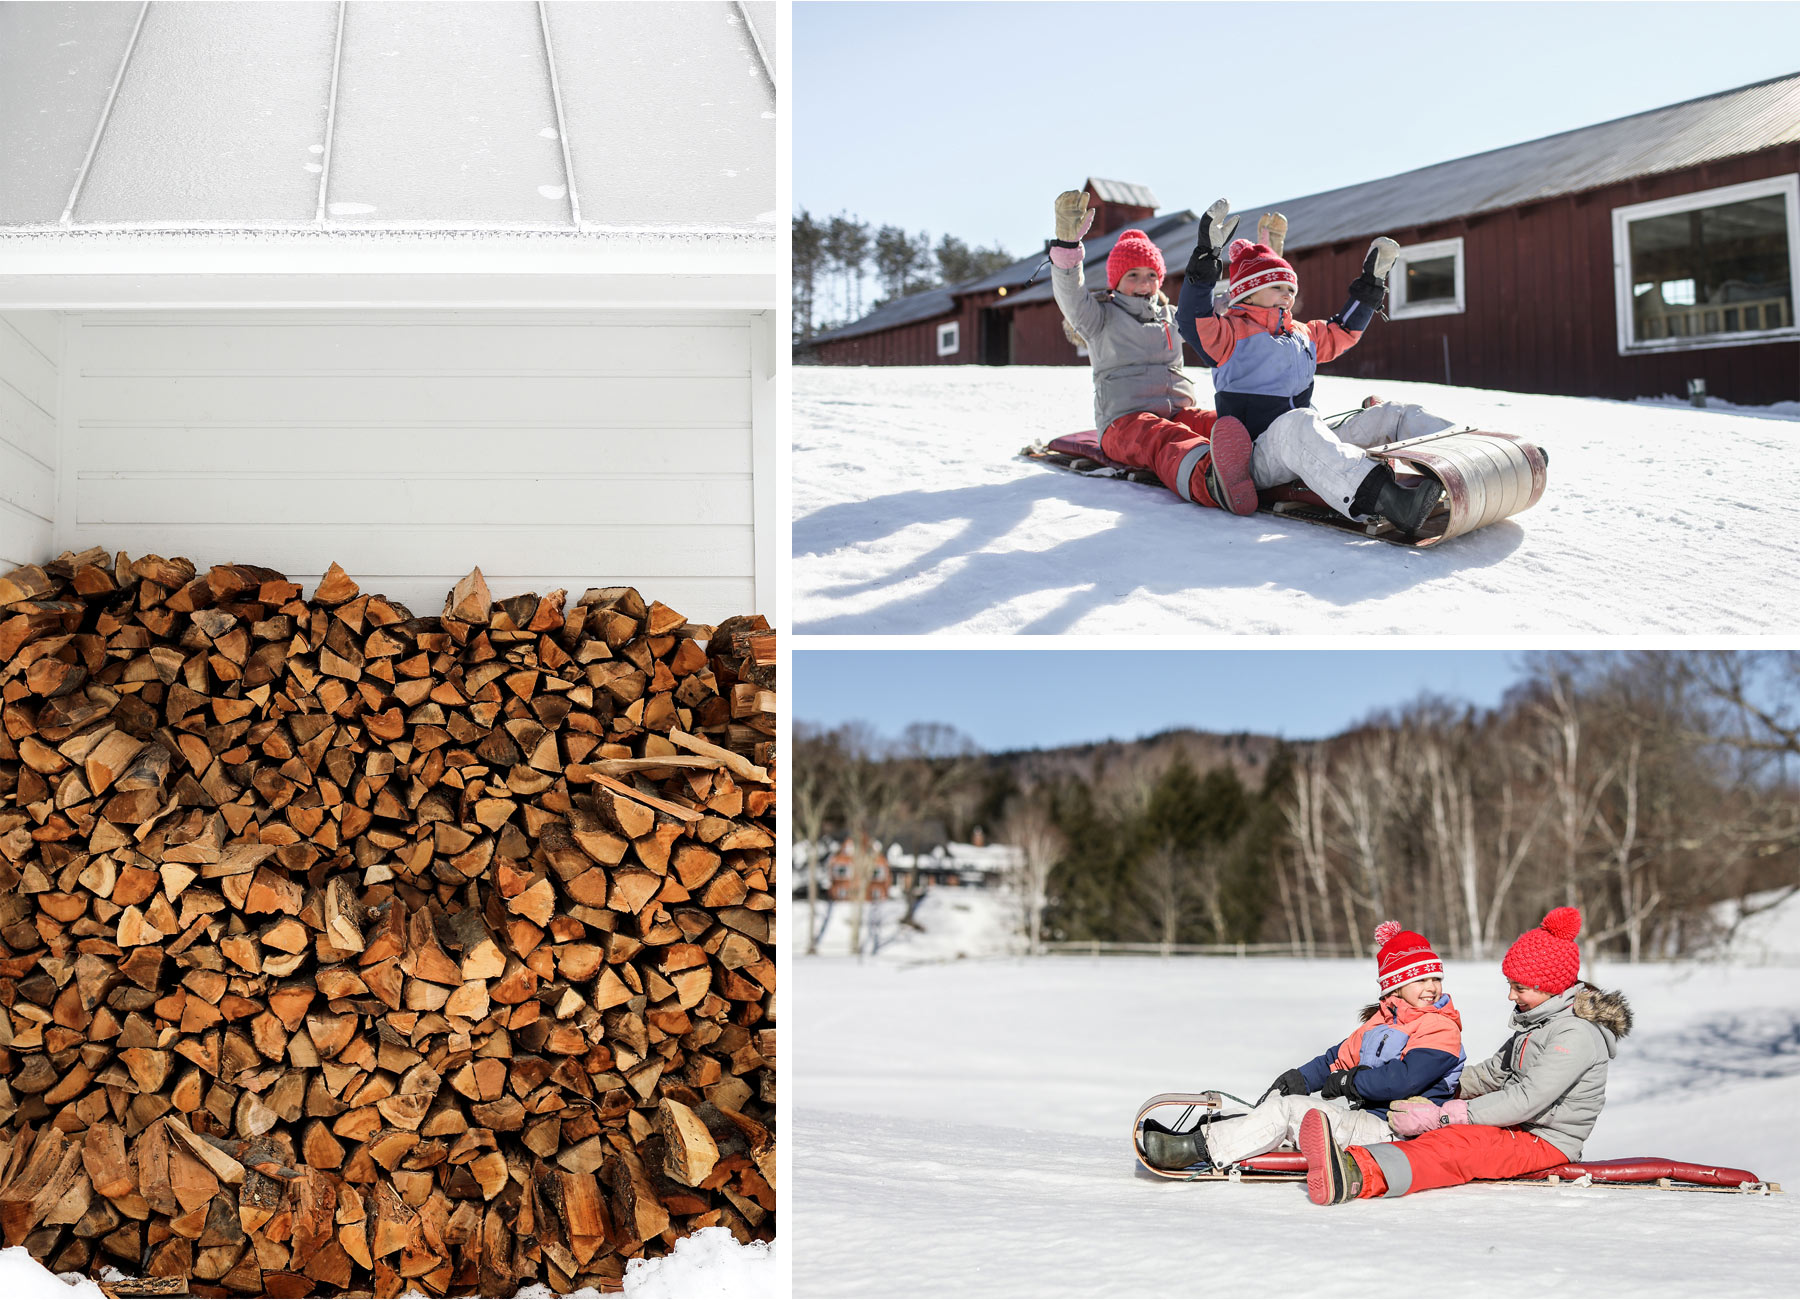 14-Stowe-Vermont-by-Andrew-Vick-Photography-Edson-Hill-Winter-Lodge-Sledding-Wood-Pile.jpg